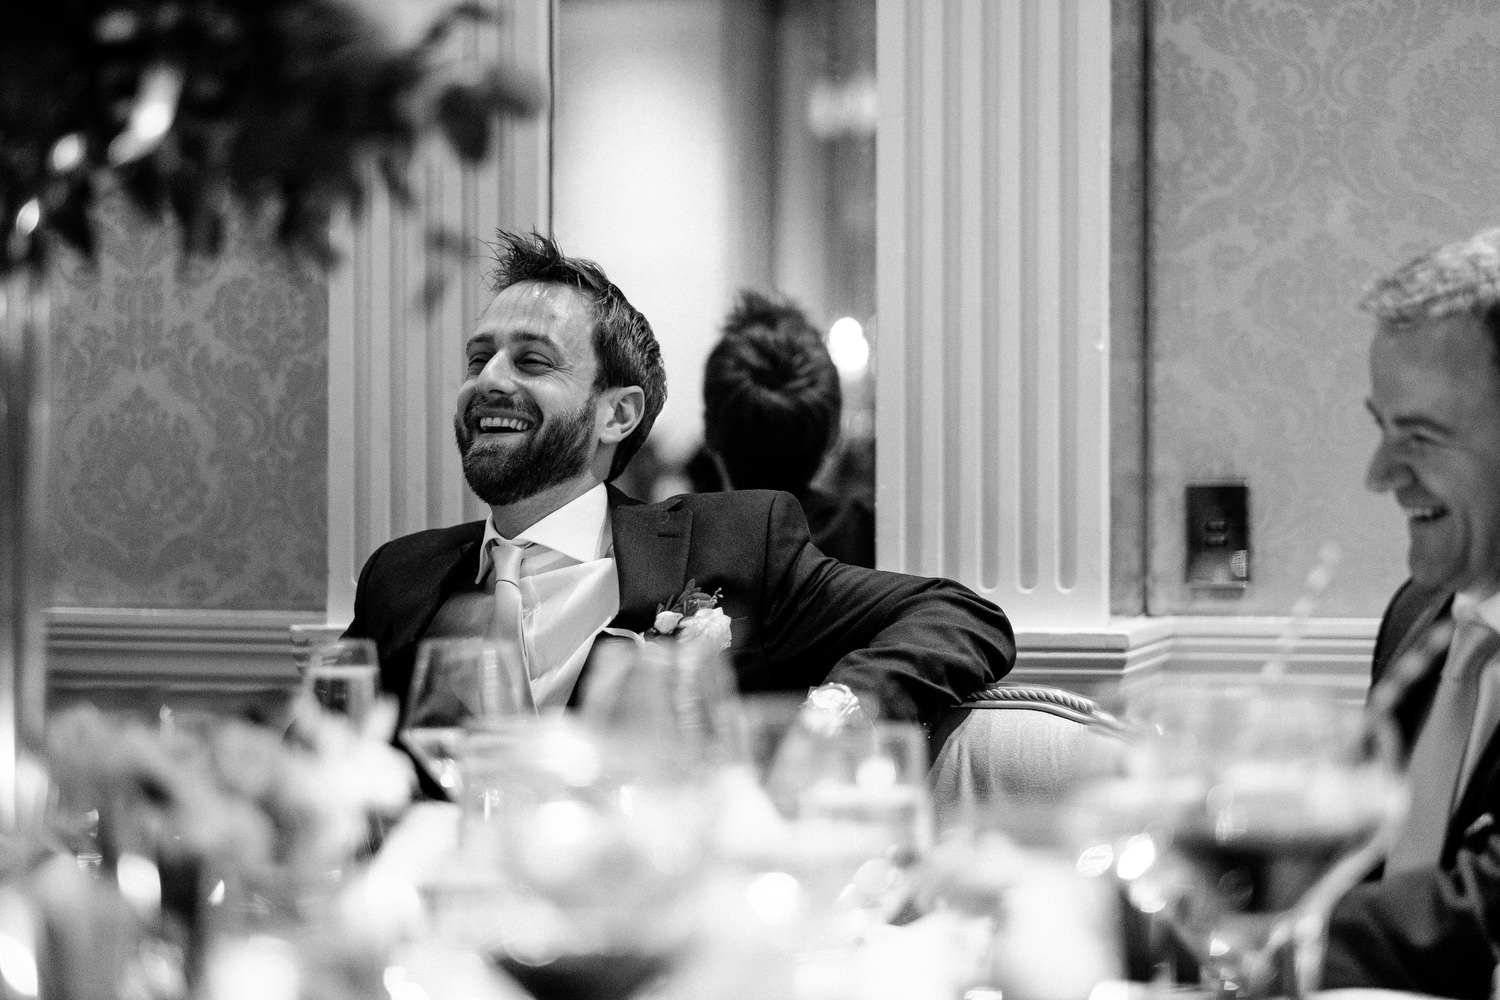 dmp0614_photographer_wedding_dublin_david_mcclelland_candid_photography_fujifilm_shelbourne_reception_documentary